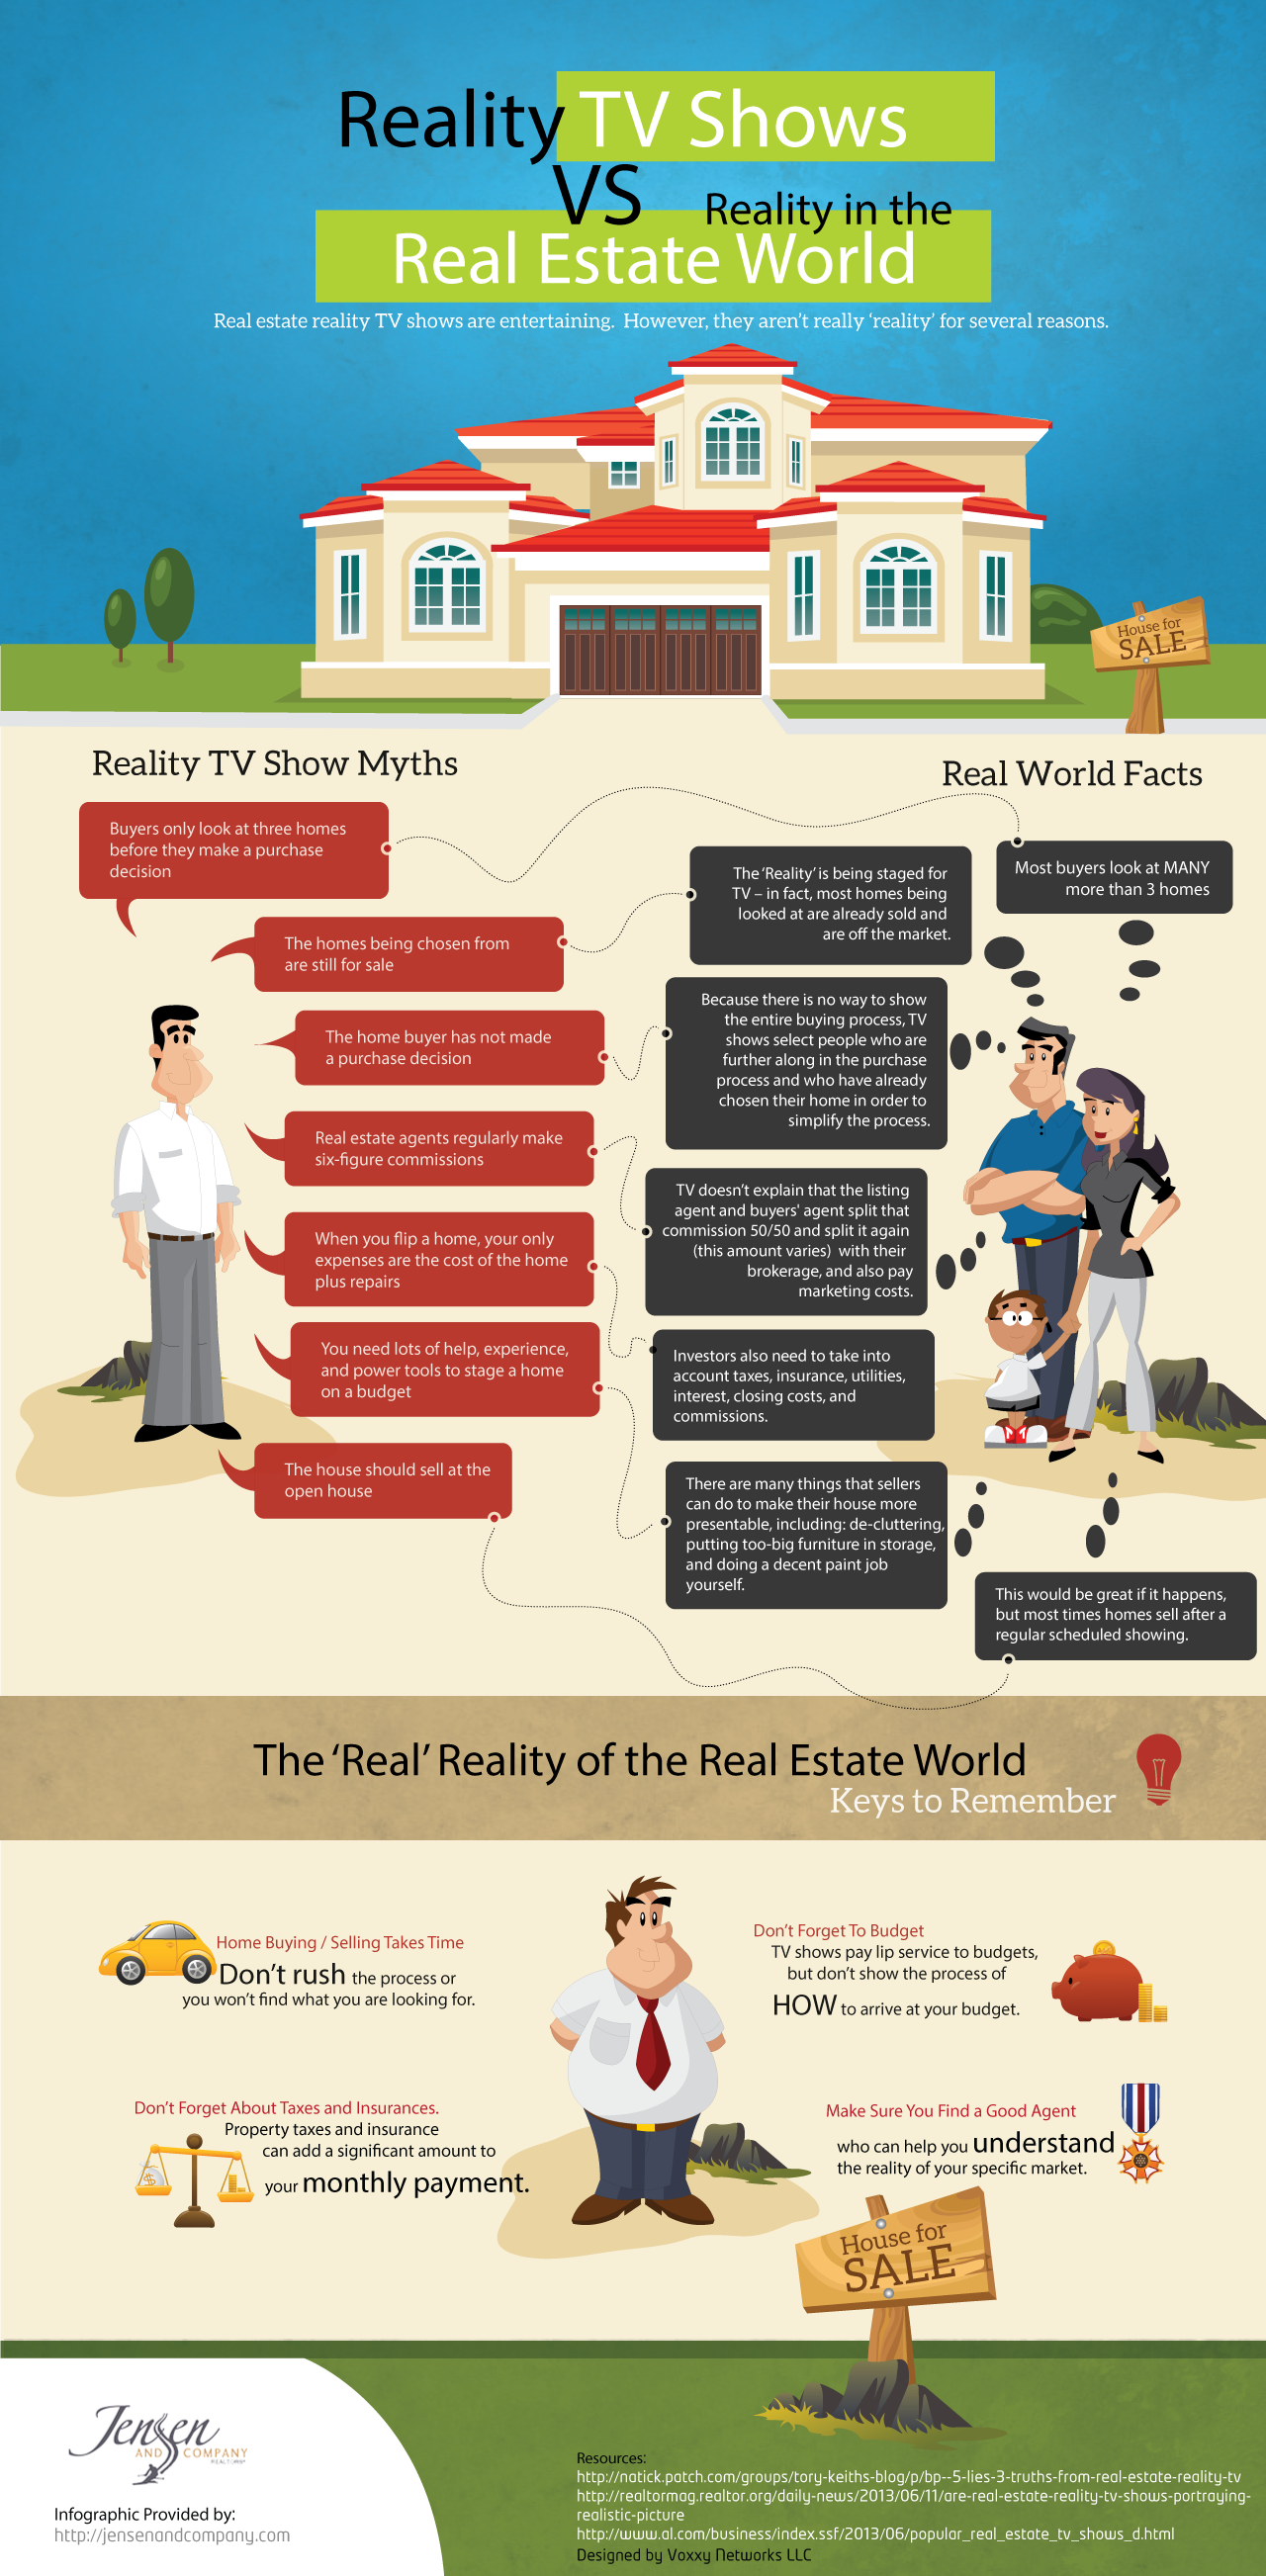 Reality TV Shows vs the Real World